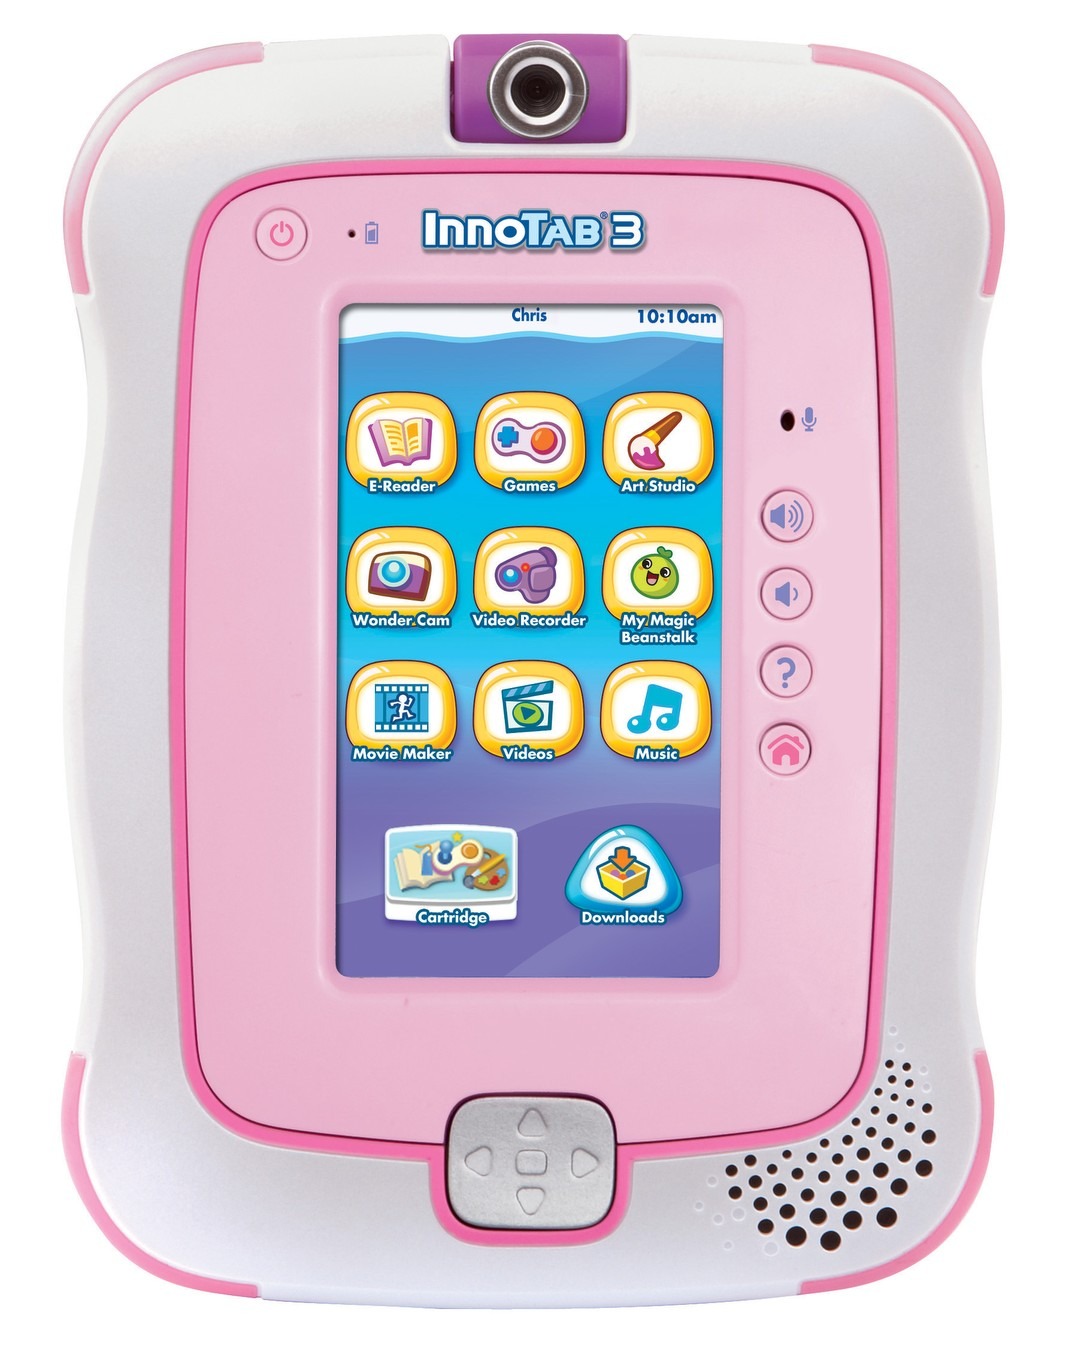 Oct 20,  · Vtech InnoTab Learning Cartridges Review + Giveaway My daughter has had the Vtech InnoTab 3S for about a year now, and she still loves it. I love how easy it is to extend the play value of our VTech toys just by purchasing new Learning o79yv71net.ml: Kids and Deals.